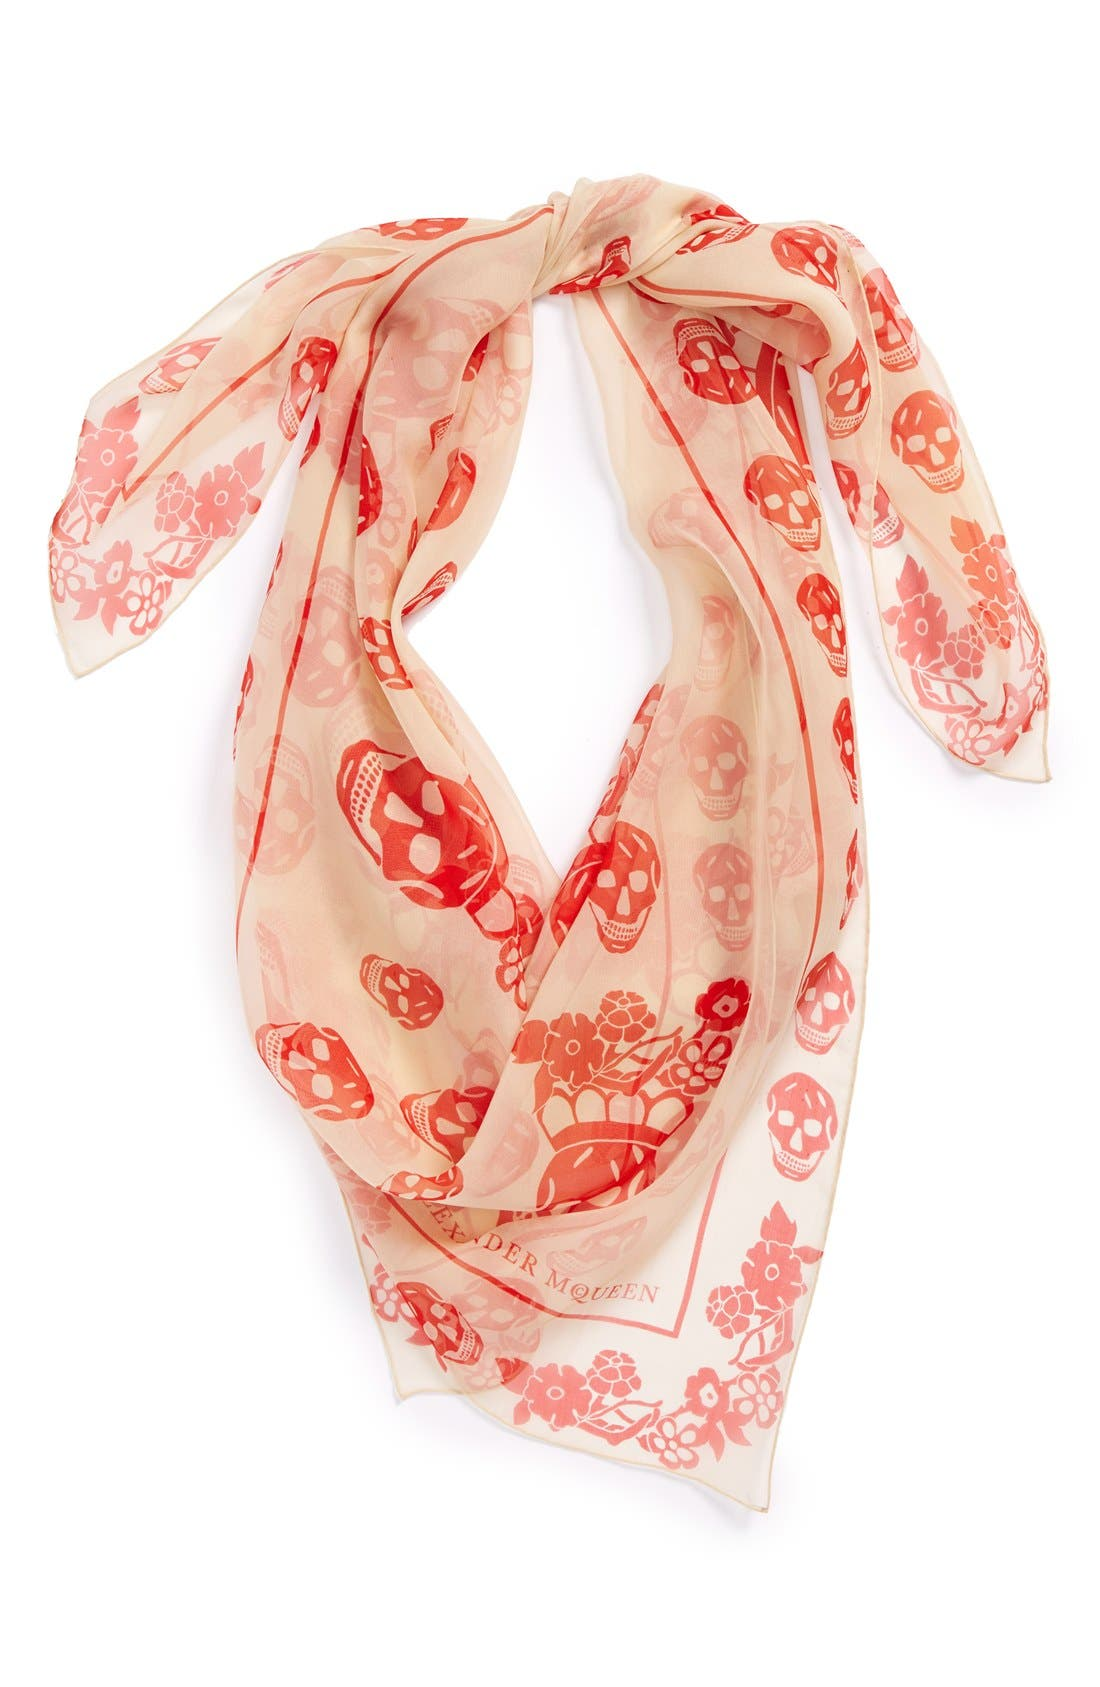 Alternate Image 1 Selected - Alexander McQueen 'Skull' Silk Chiffon Scarf